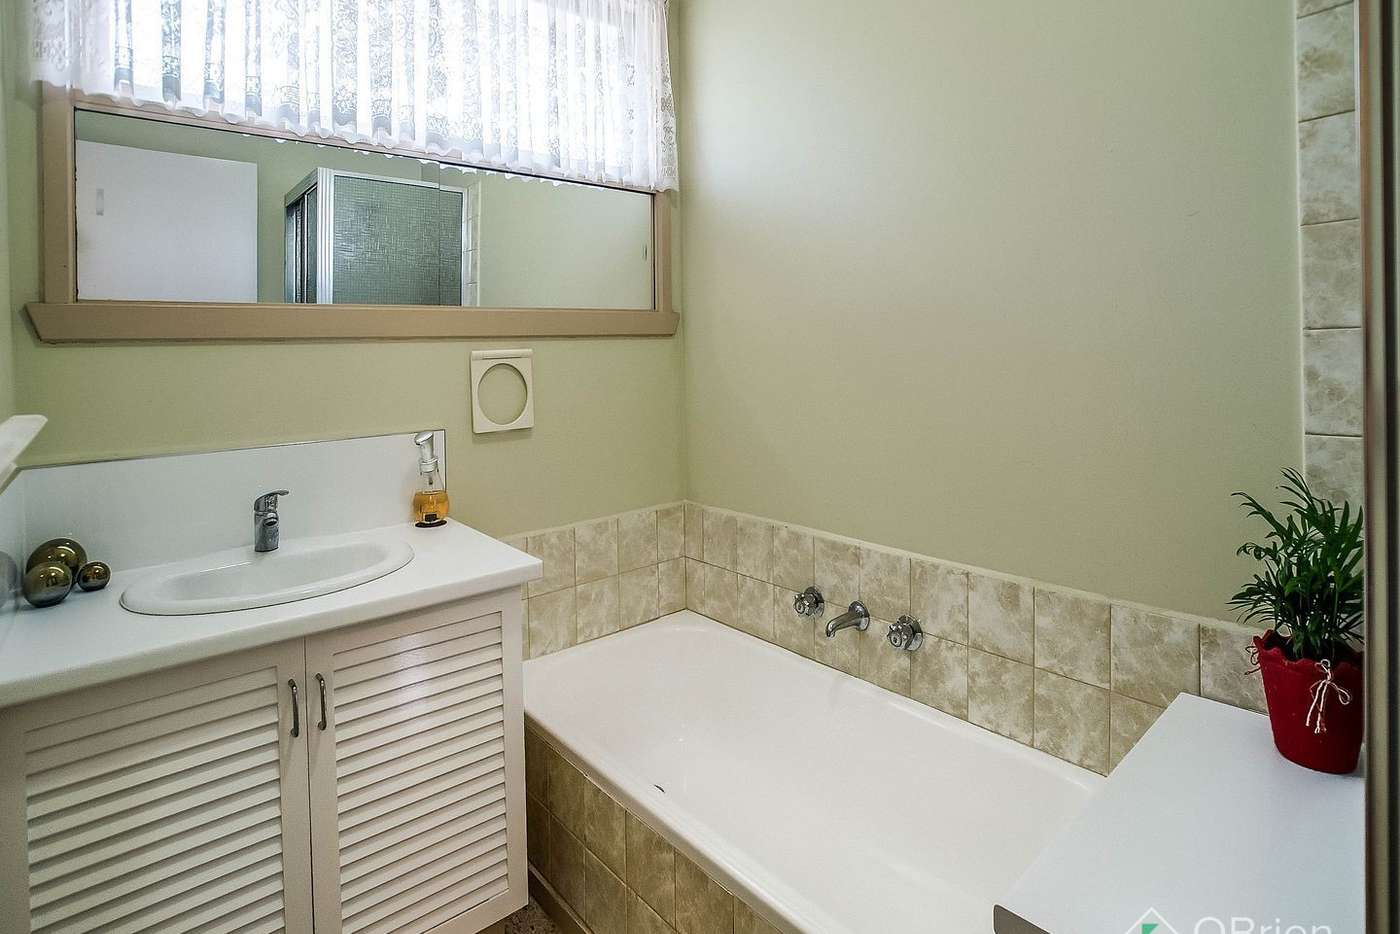 Sixth view of Homely house listing, 35 Melaleuca Drive, Upwey VIC 3158